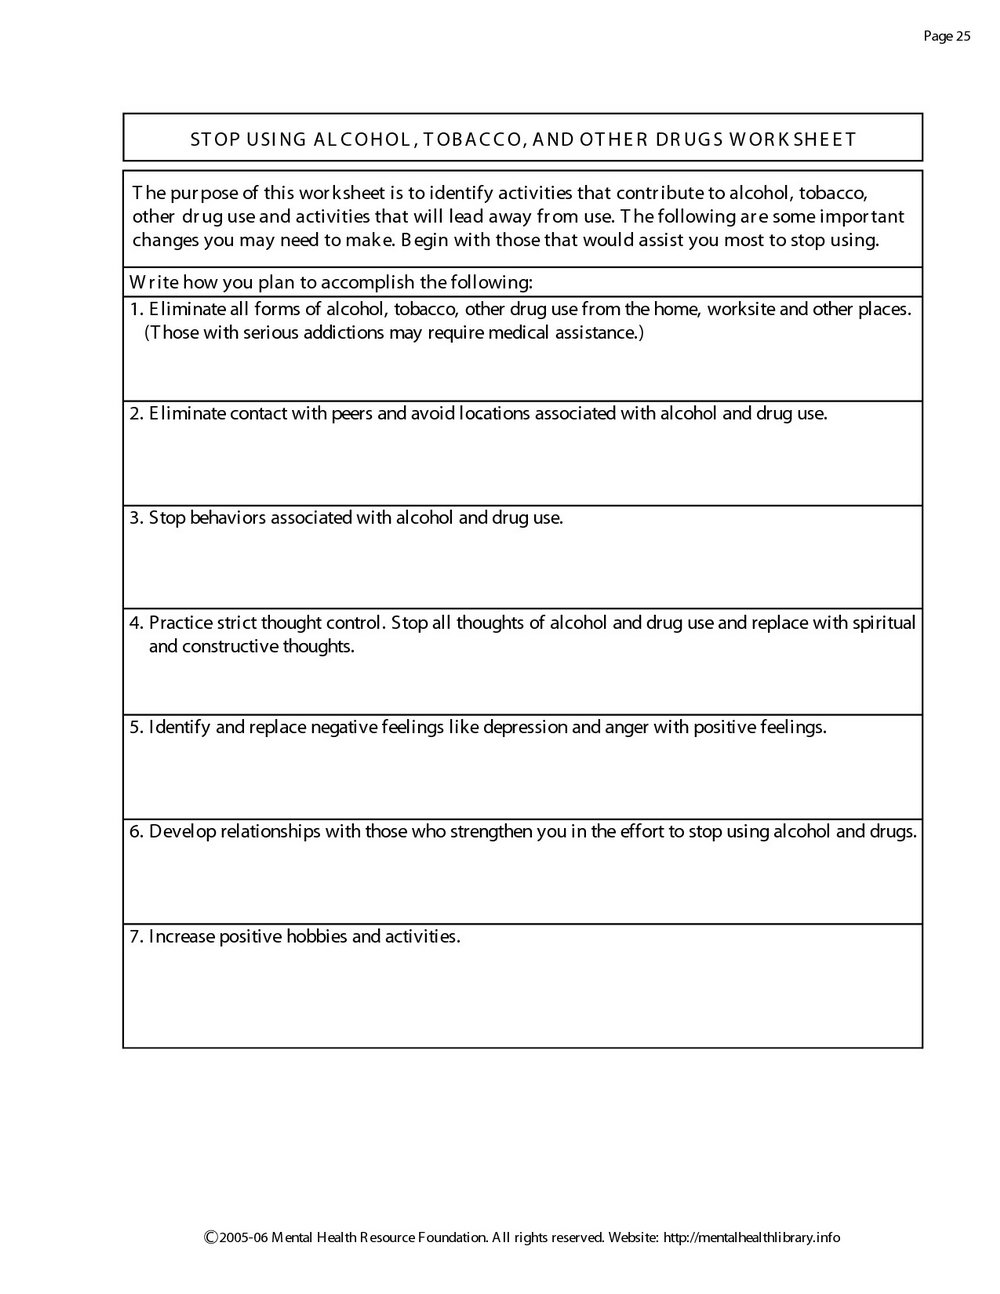 Substance Abuse Worksheets Pinterest